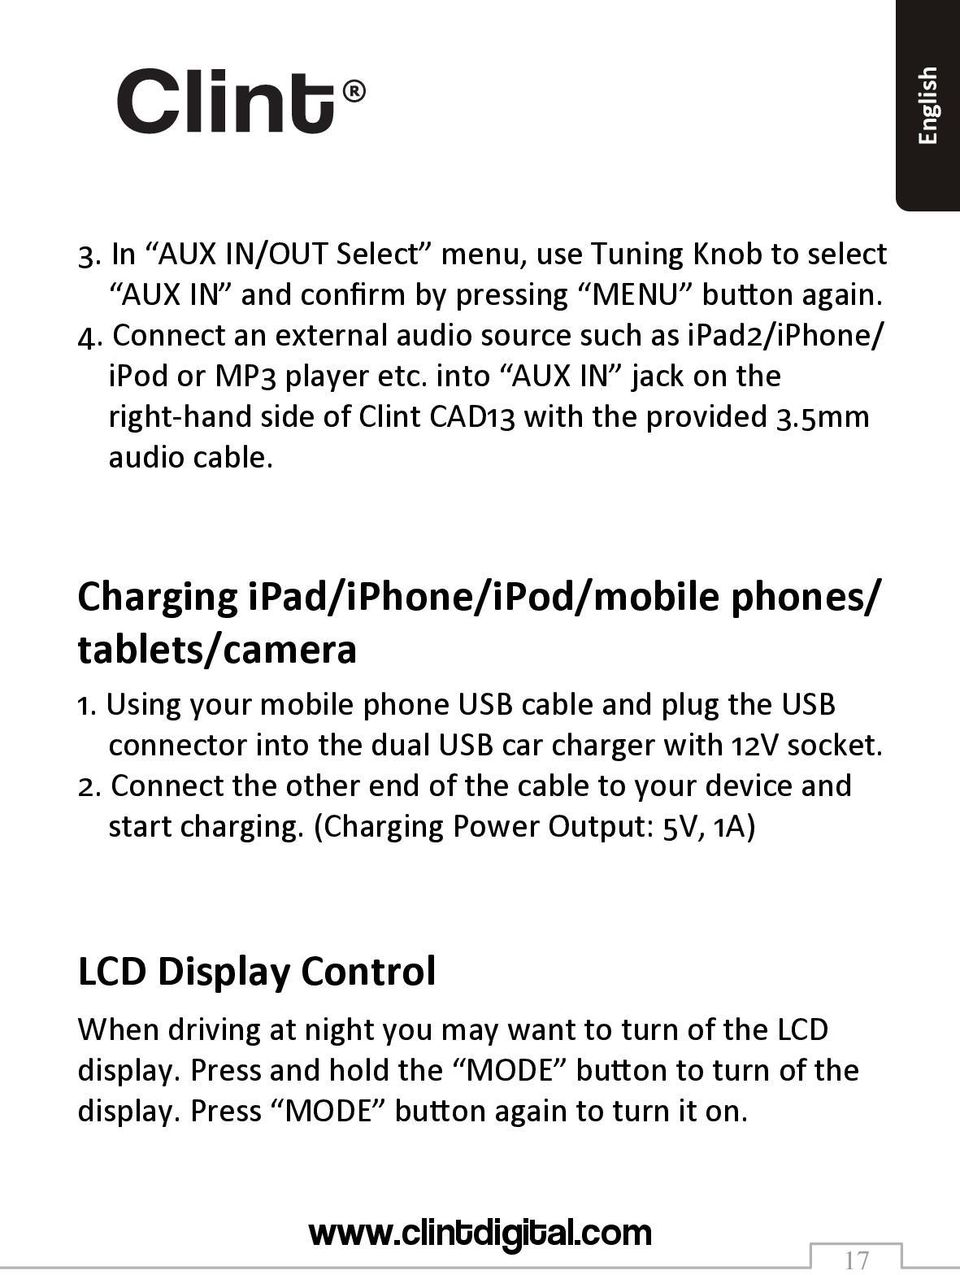 Charging ipad/iphone/ipod/mobile phones/ tablets/camera 1. Using your mobile phone USB cable and plug the USB connector into the dual USB car charger with 12V socket. 2.